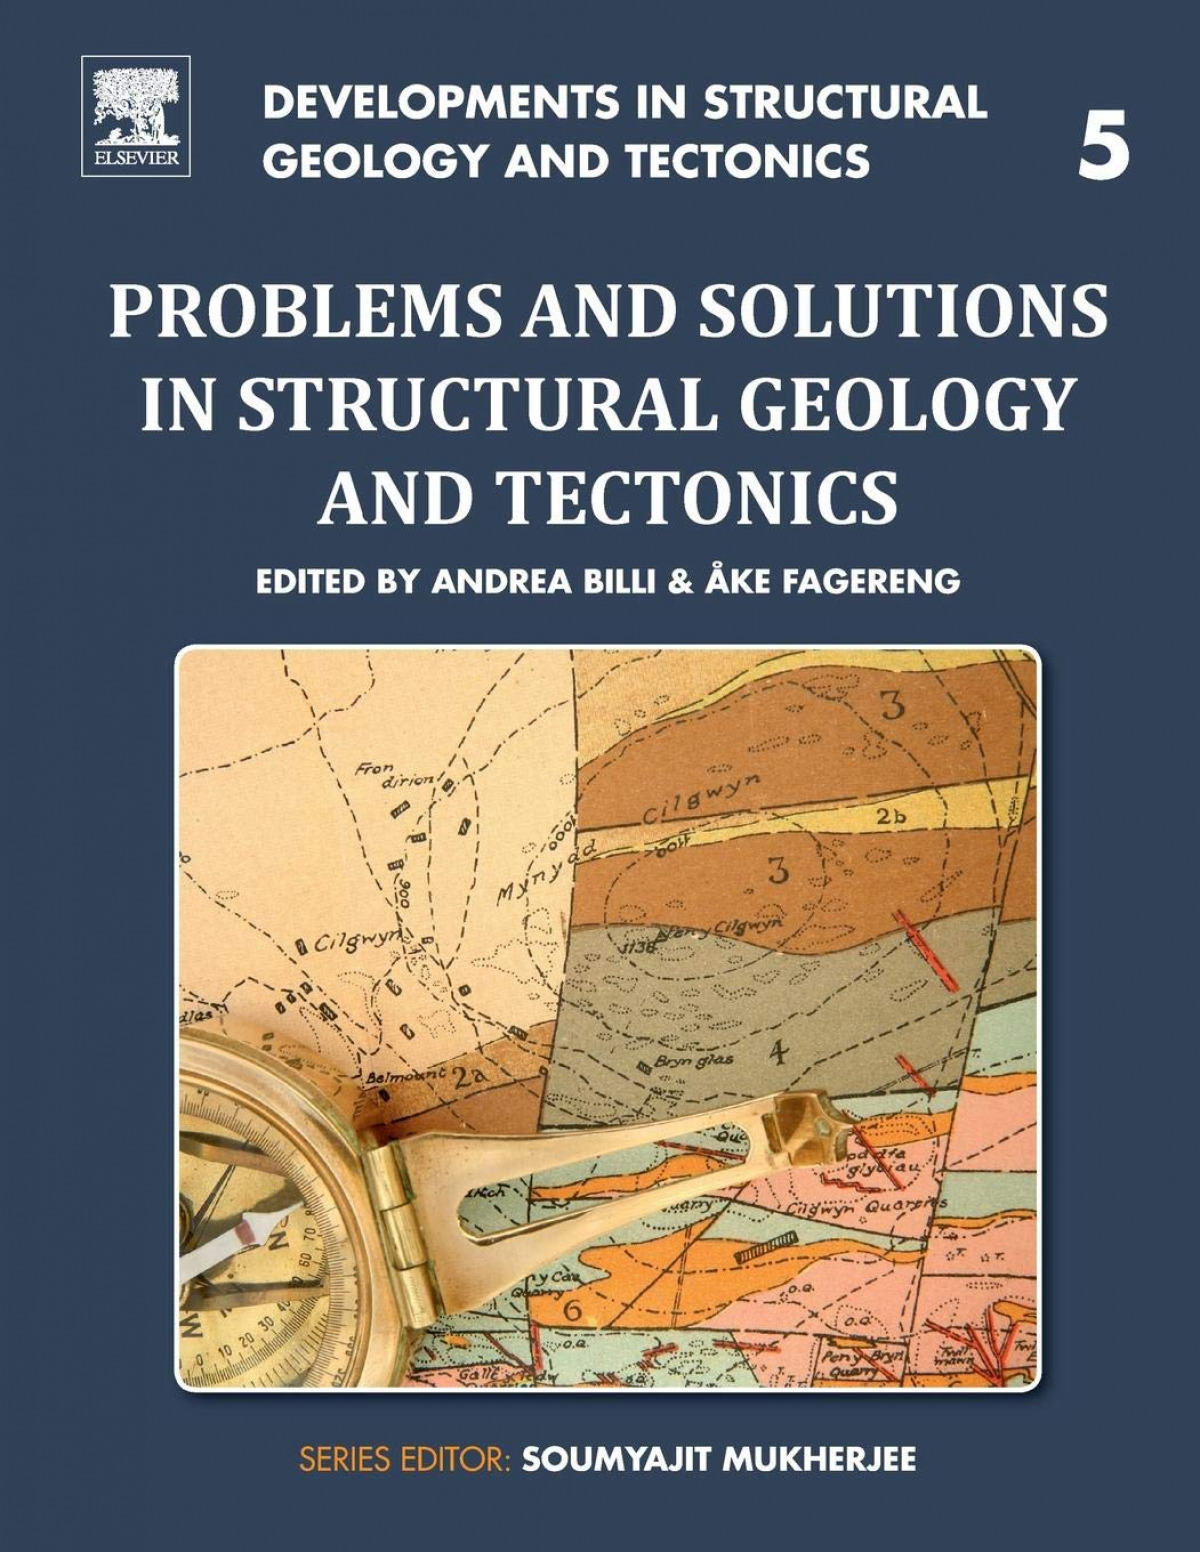 PROBLEMS AND SOLUTIONS IN STRUCTURAL GEOLOGY TECTONICS VOL.5